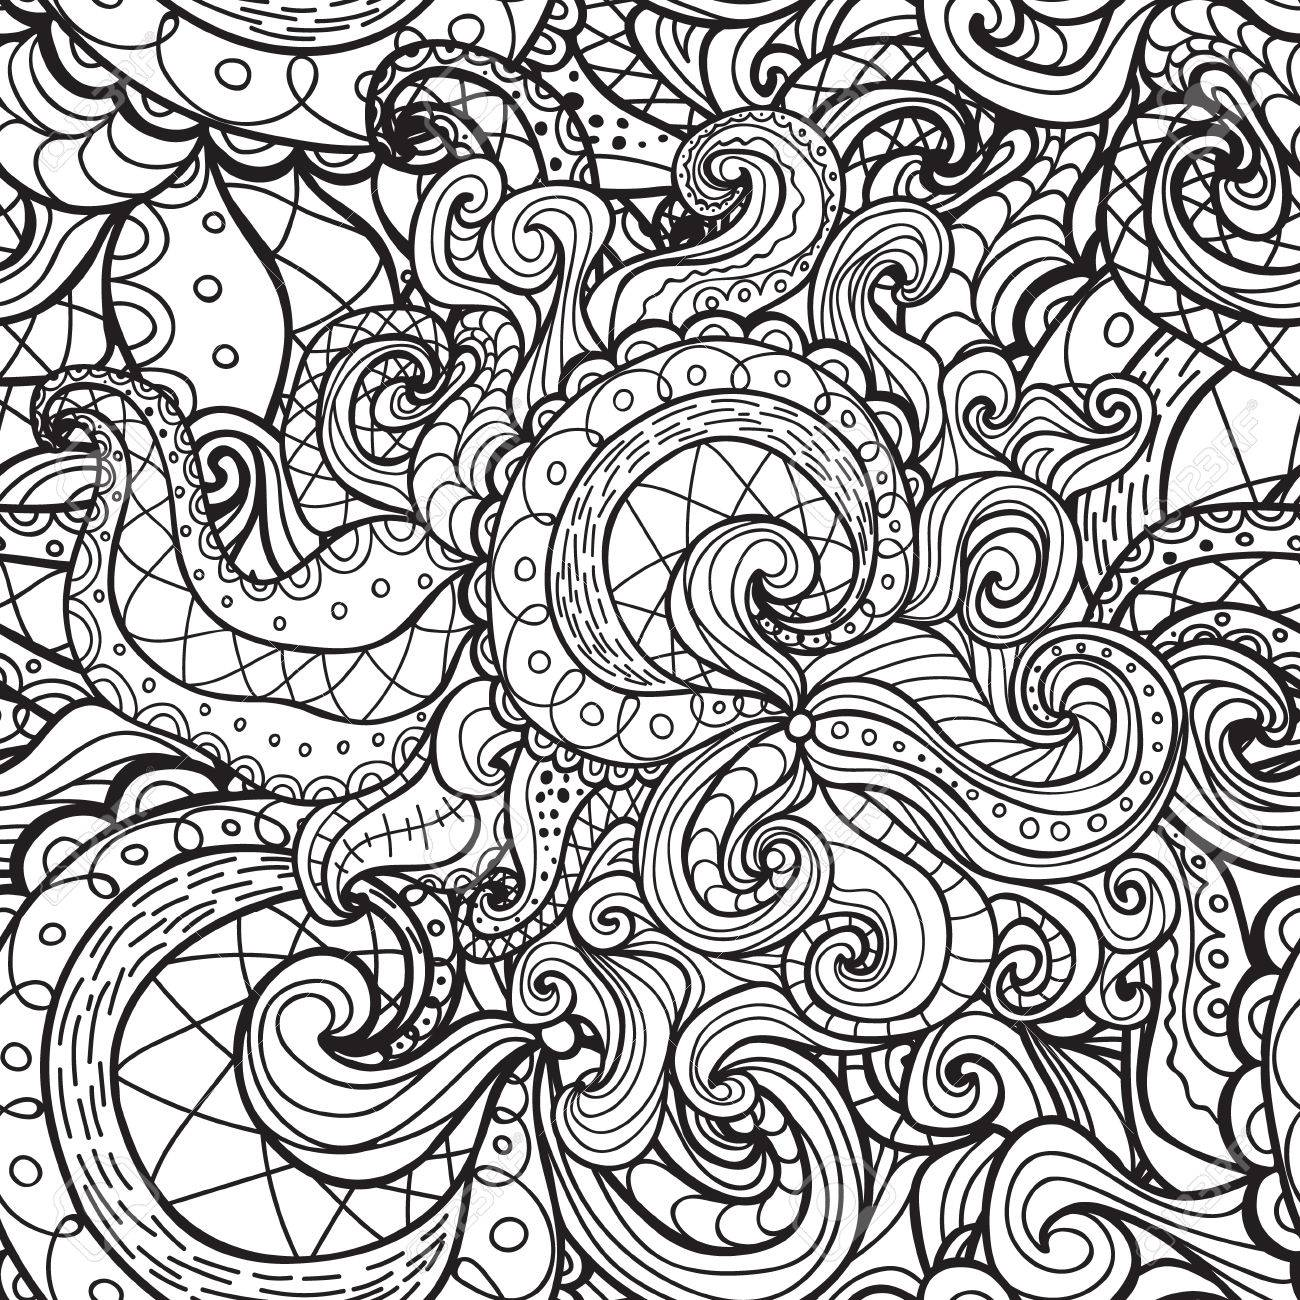 Vector Doodle Seamless Pattern Coloring Book For Adult And Children